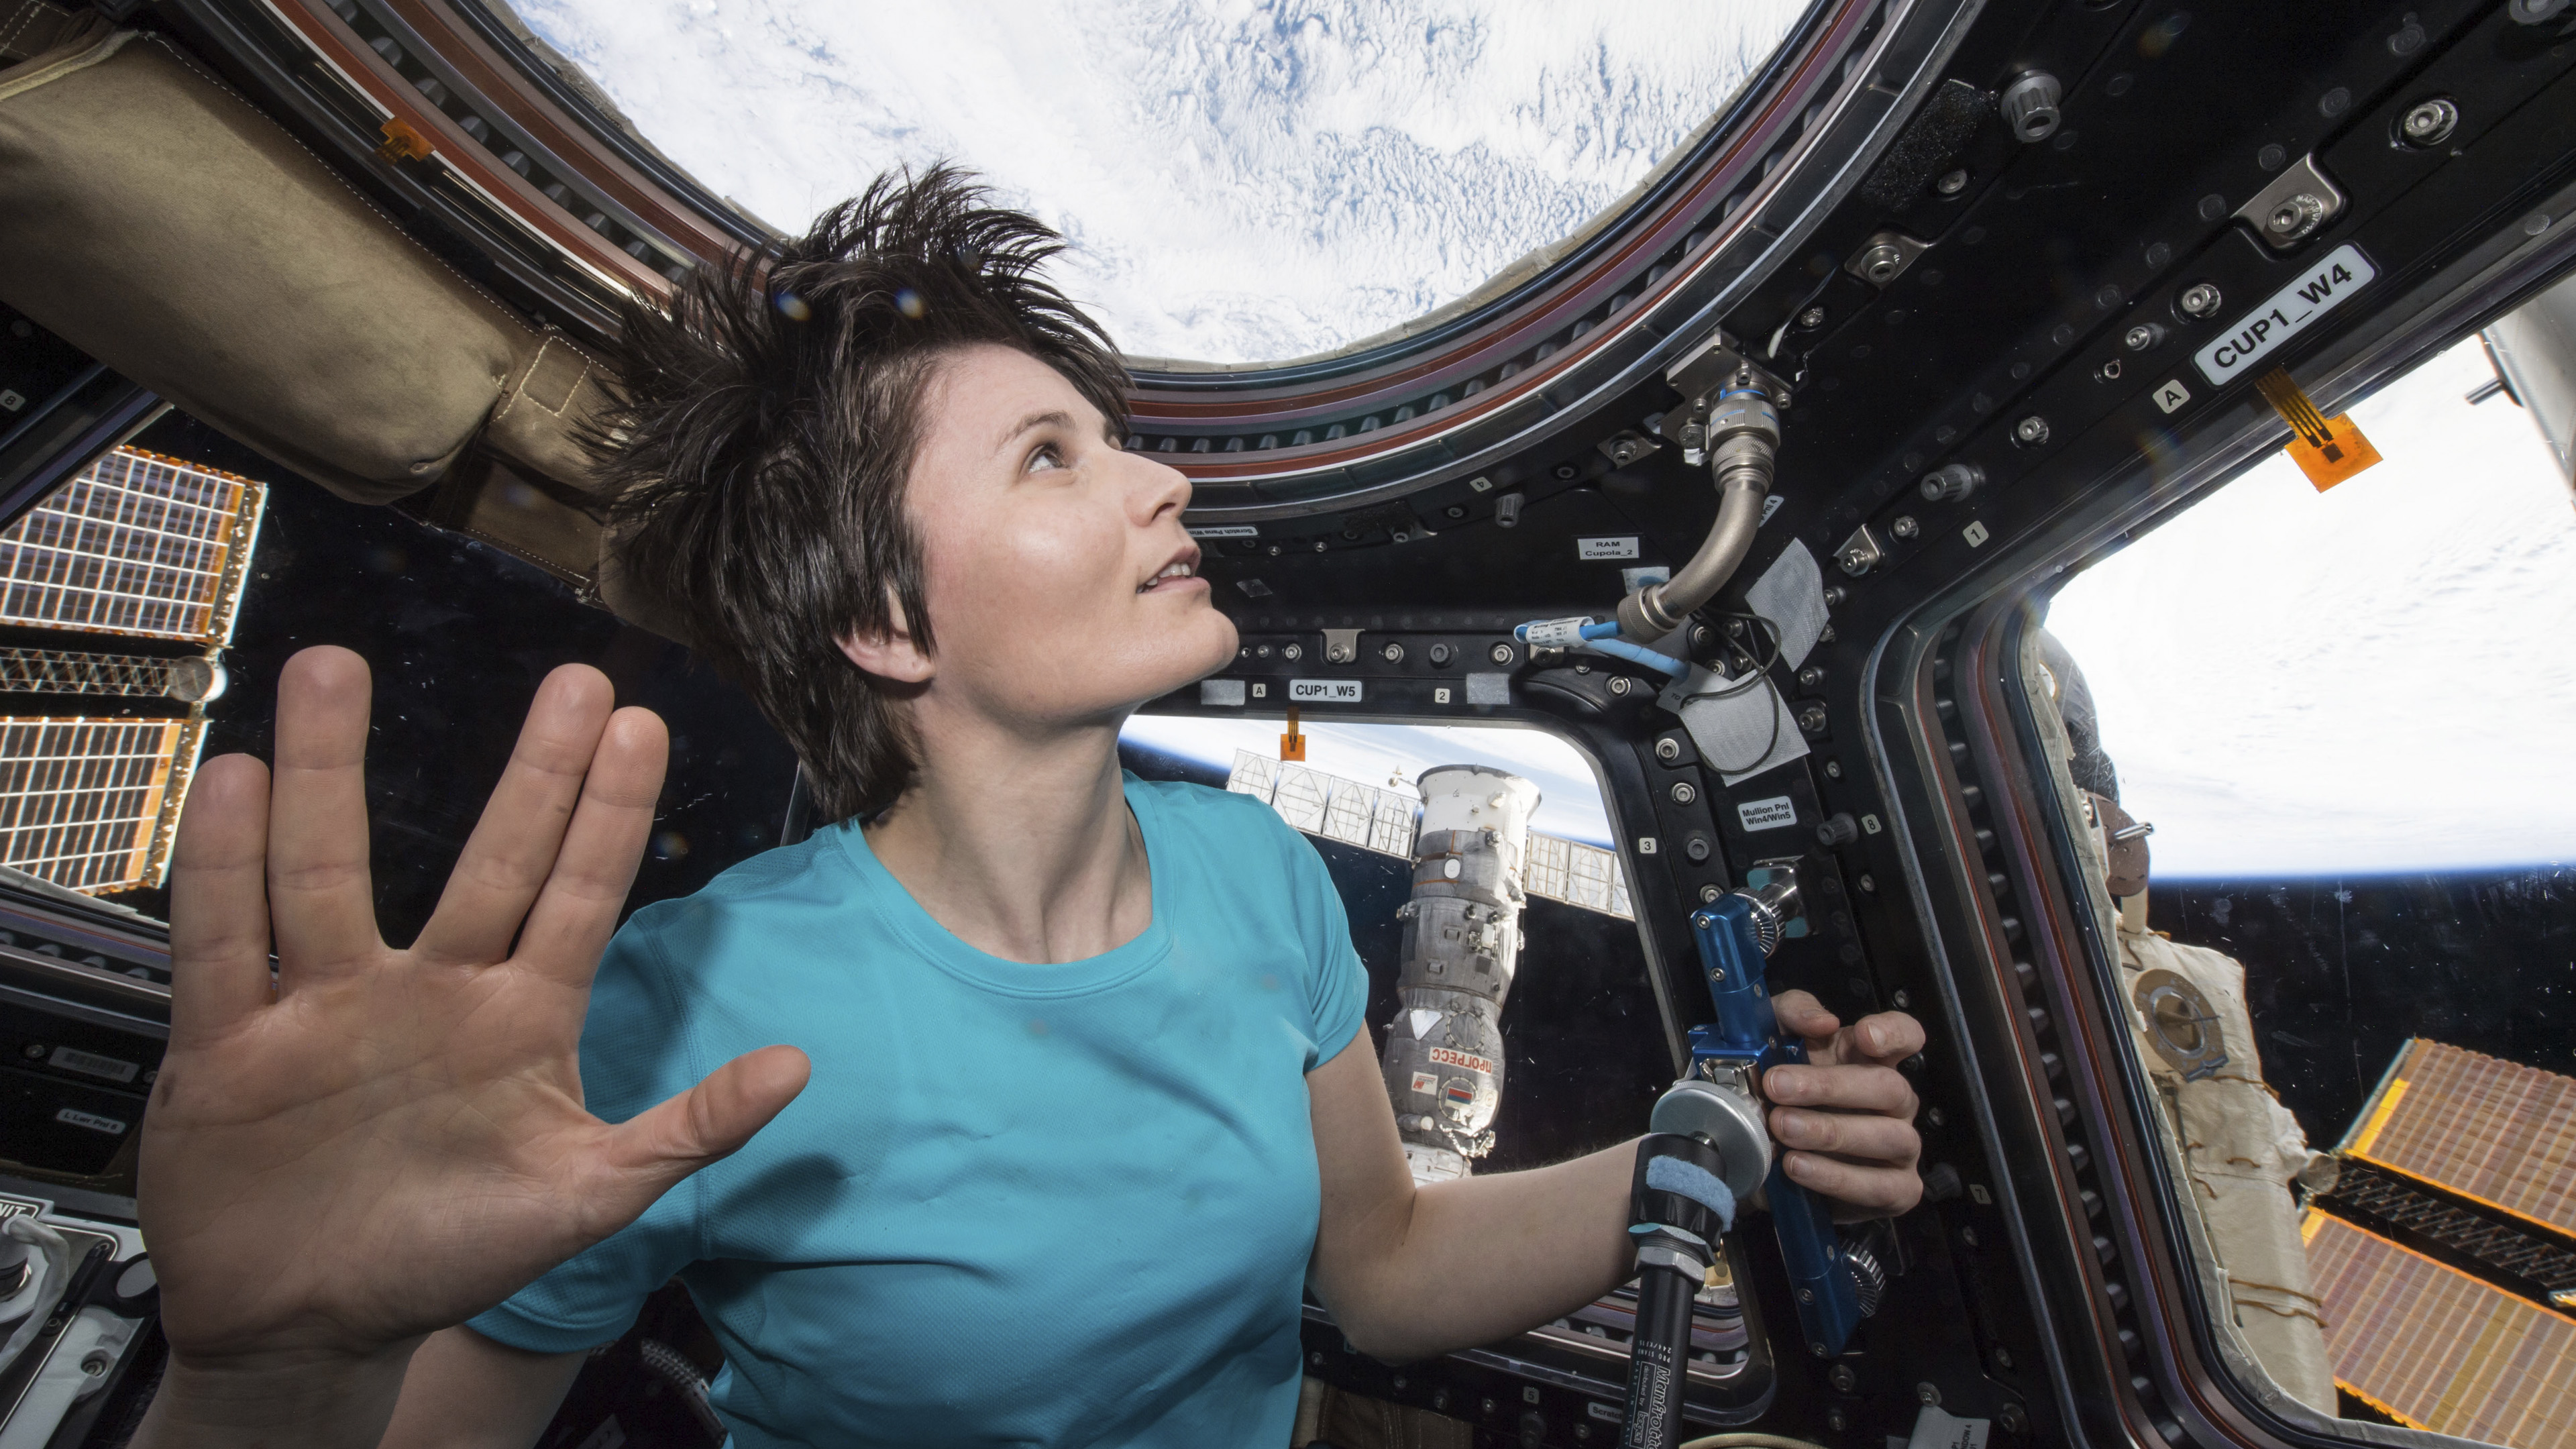 Astronauts share intimate stories of life among the stars in touching new documentary